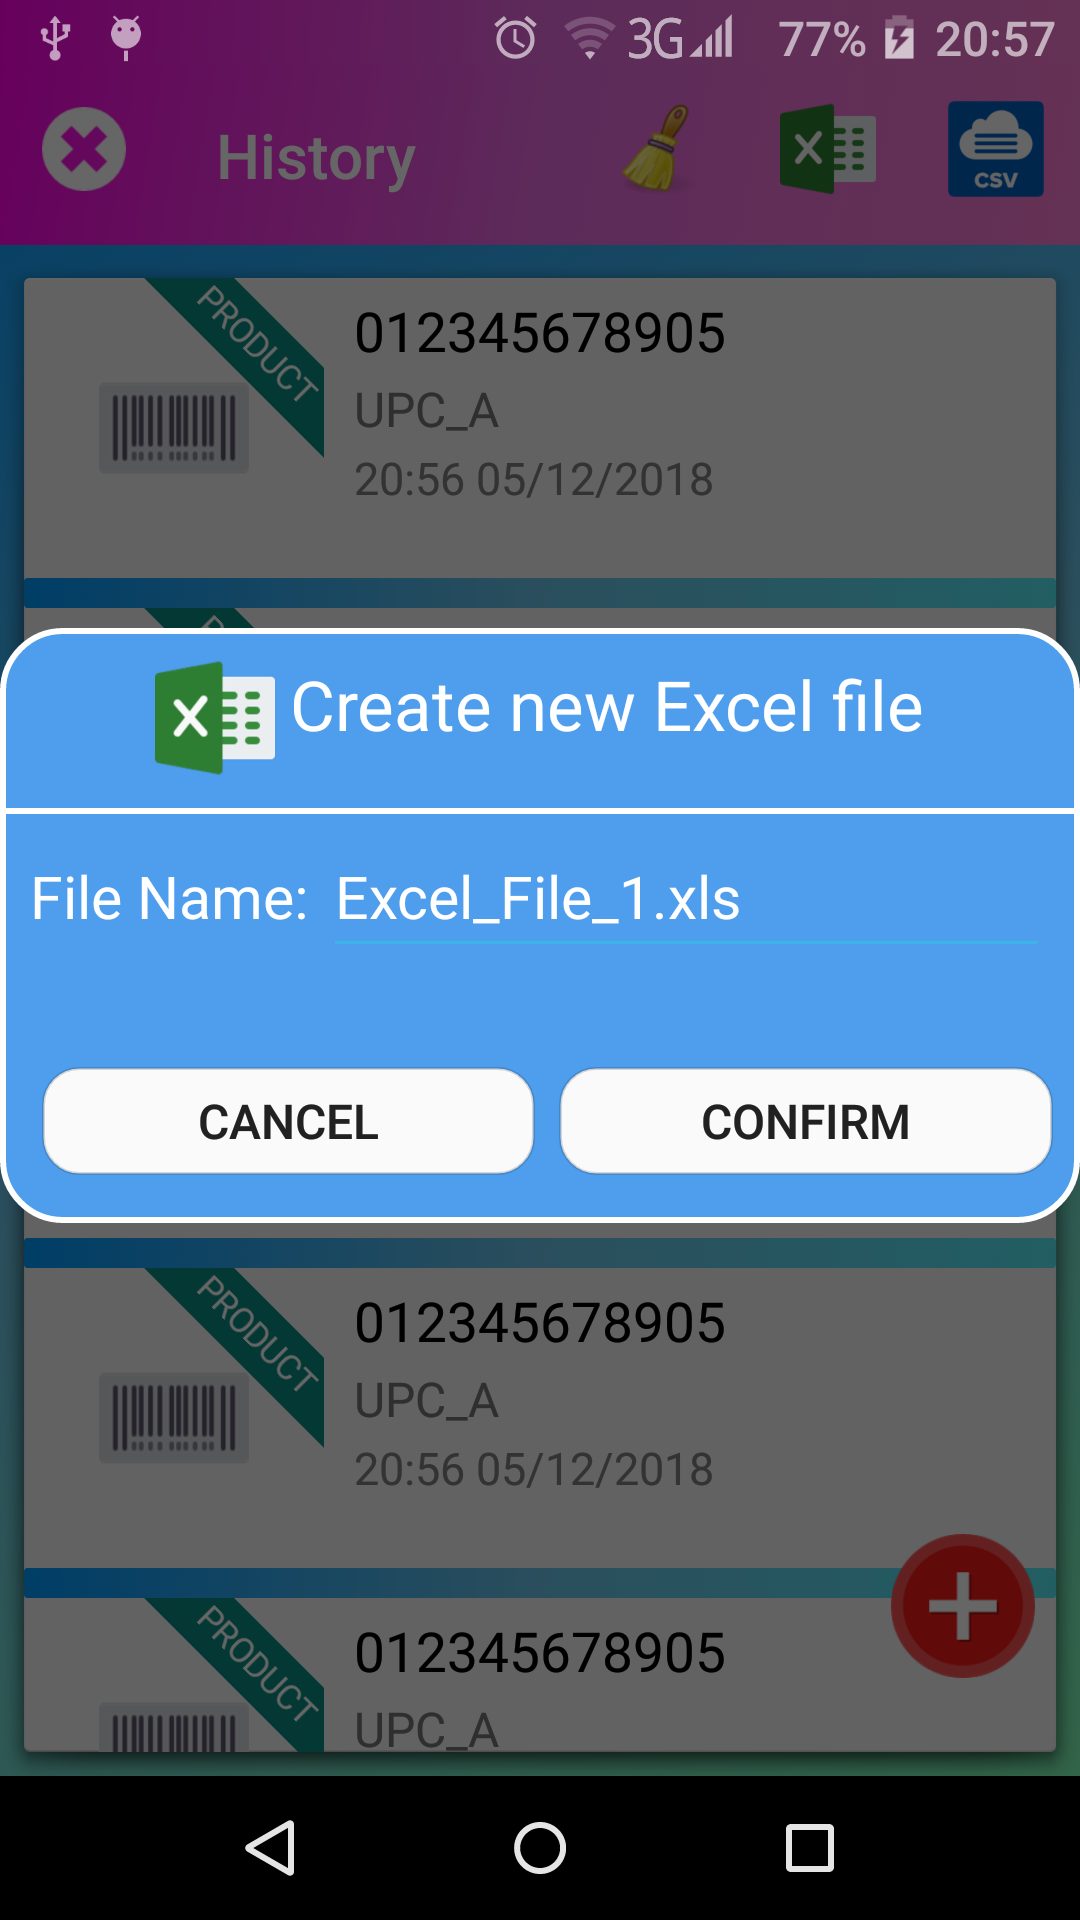 Barcode generator software ☆ BEST VALUE ☆ Top Picks